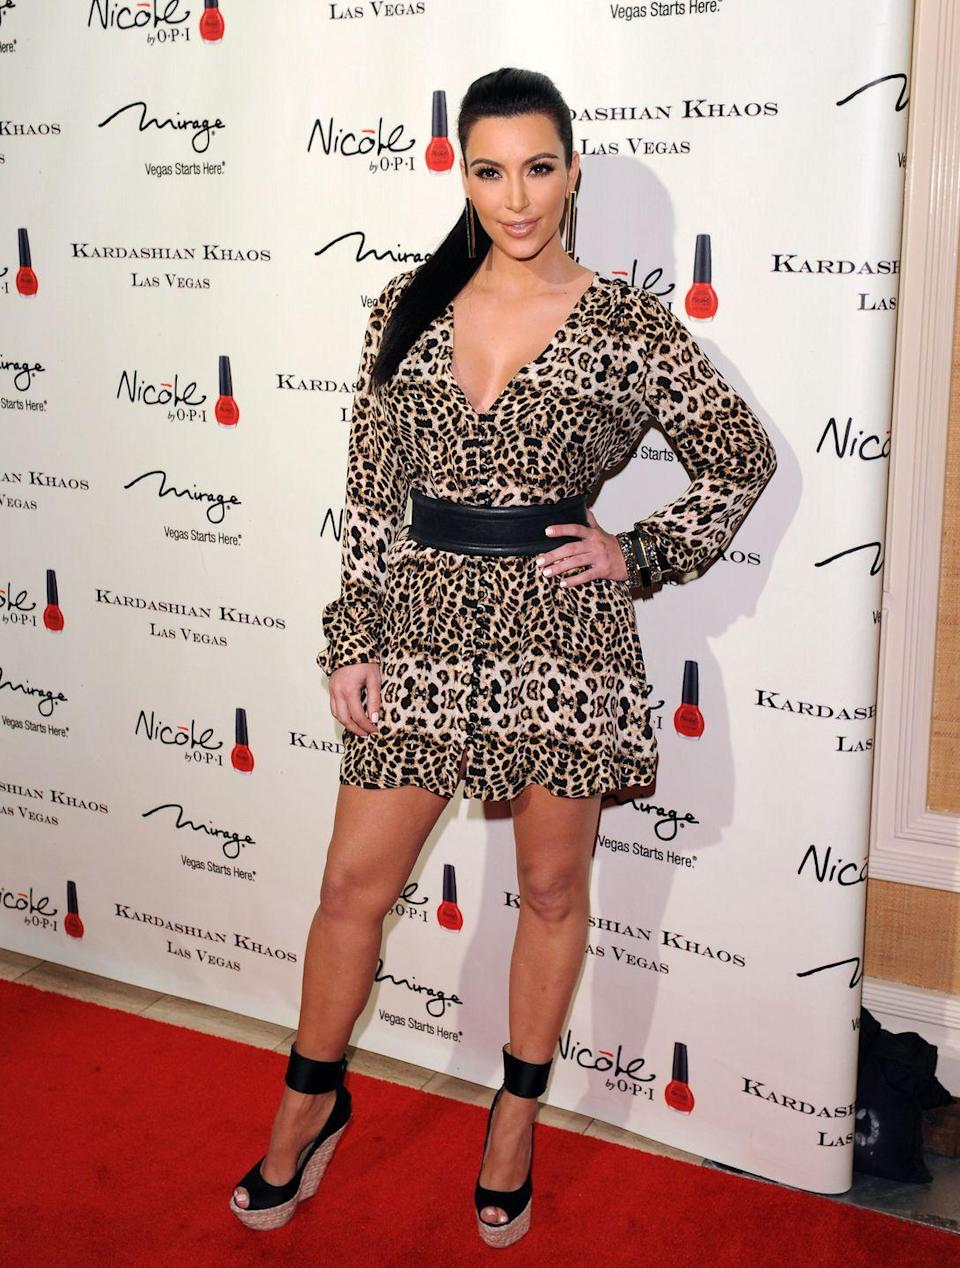 <p>Kim Kardashian paired her sky-high espadrilles with a ruffled cheetah-print dress cinched at the waist for the grand opening of the Kardashian Khaos store in Las Vegas.</p>